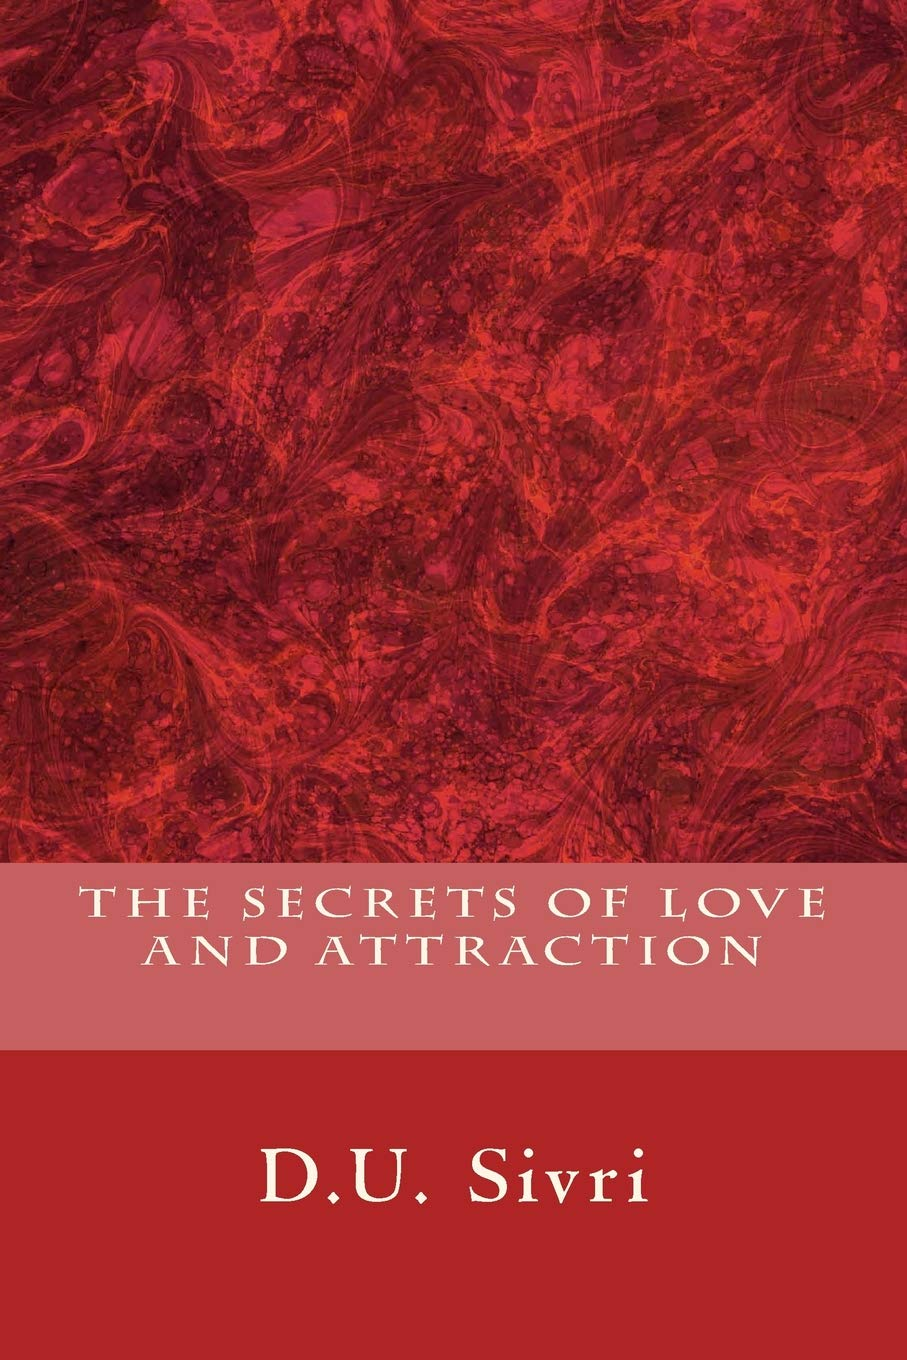 The Secrets of Love and Attraction (The Secrets of Successful Living) (Volume 6) PDF